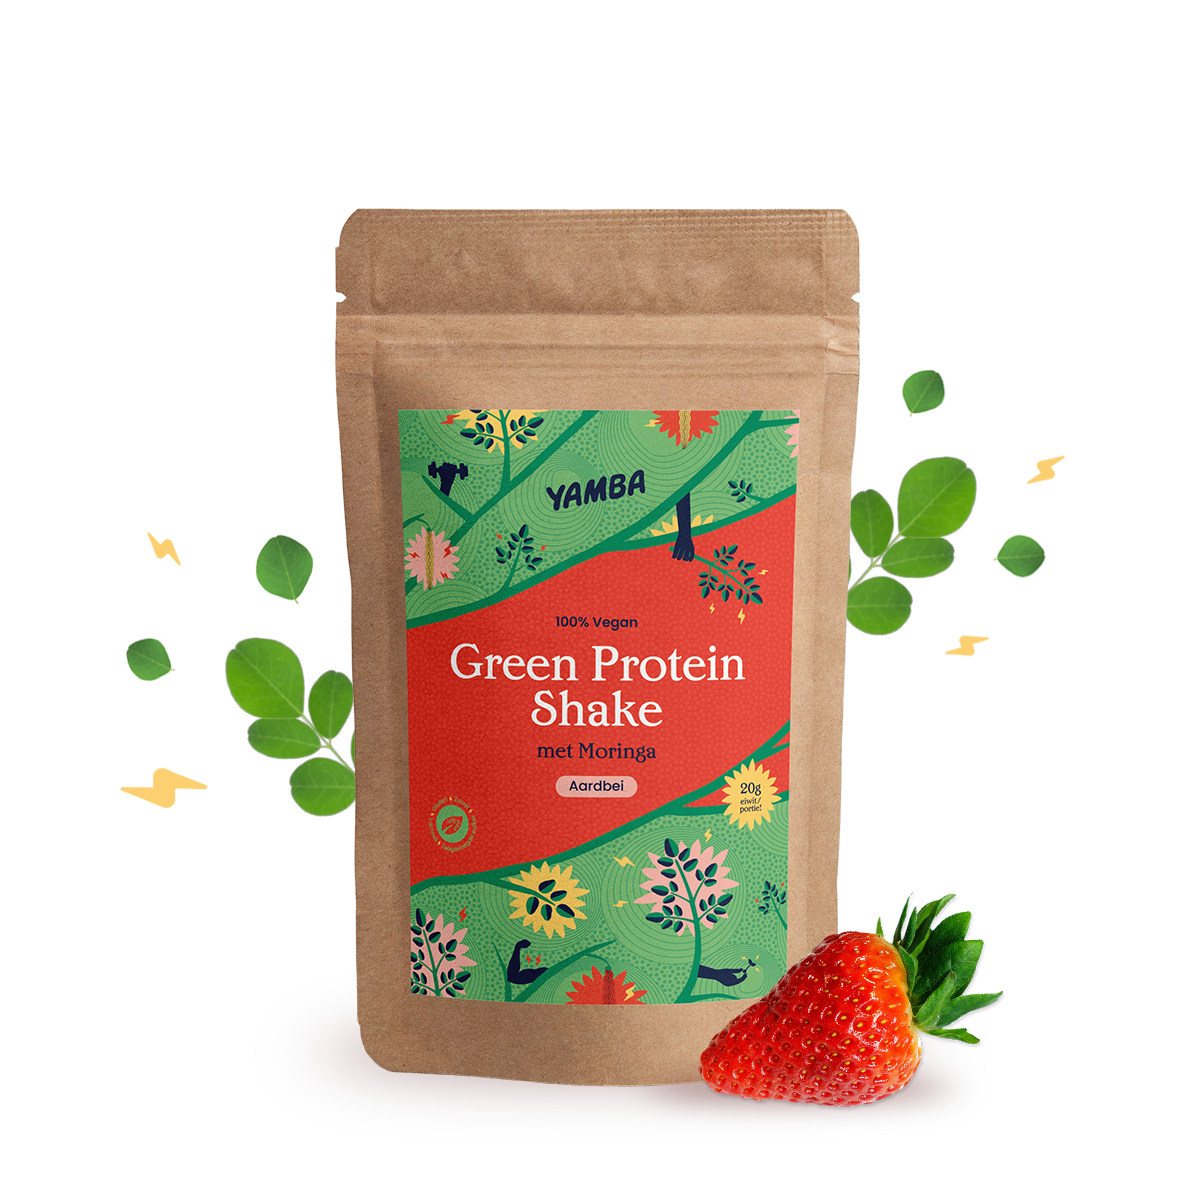 Green Protein Shake Aarbei (1kg) packaging